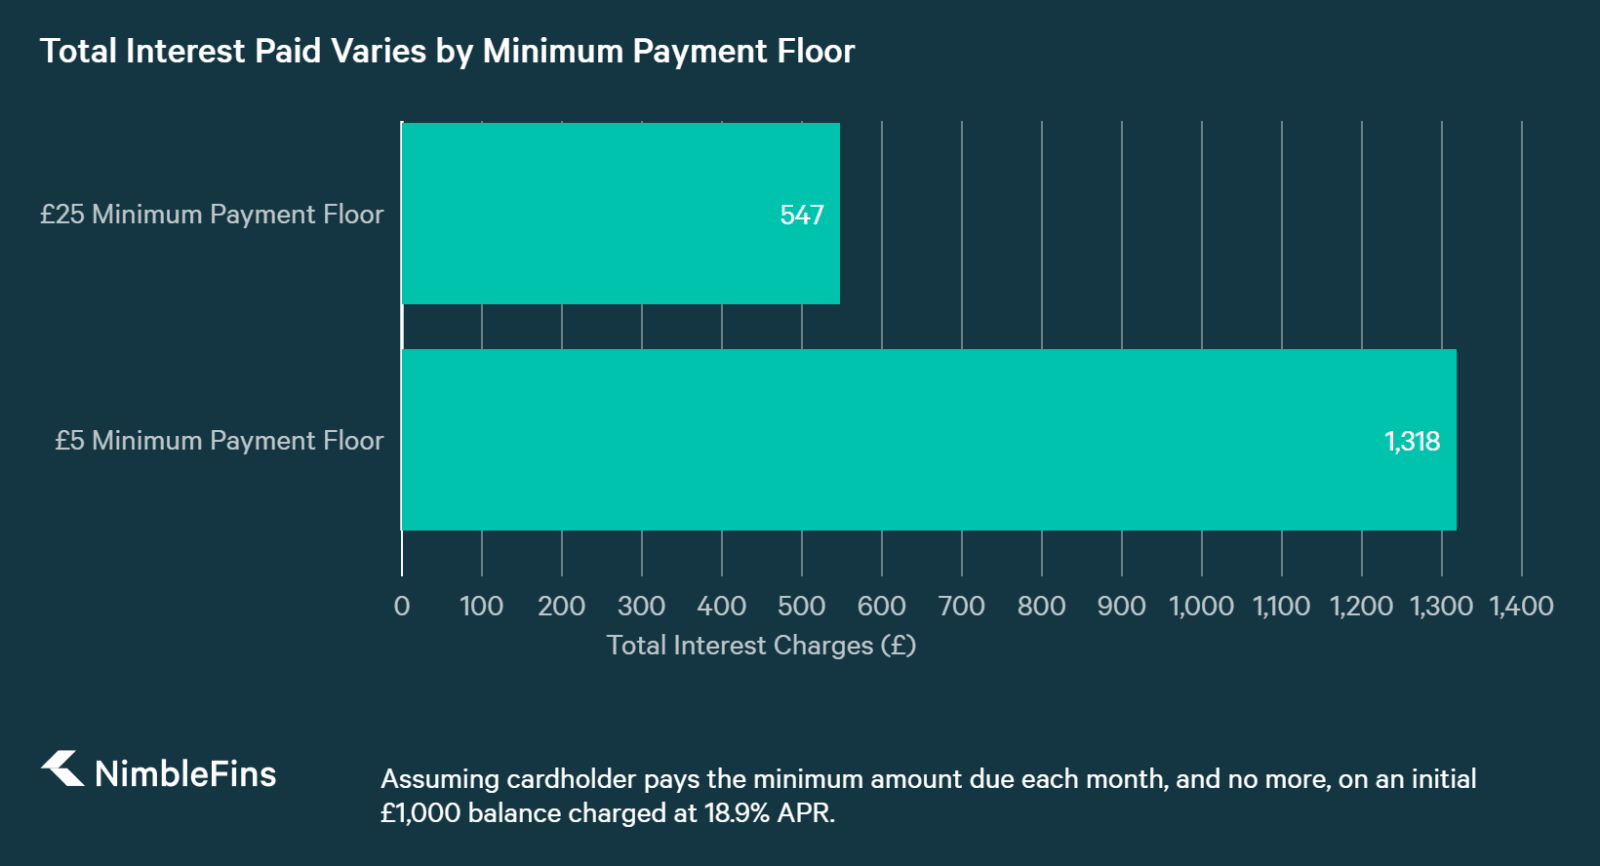 chart showing credit card interest charges as a function of the minimum payment floor